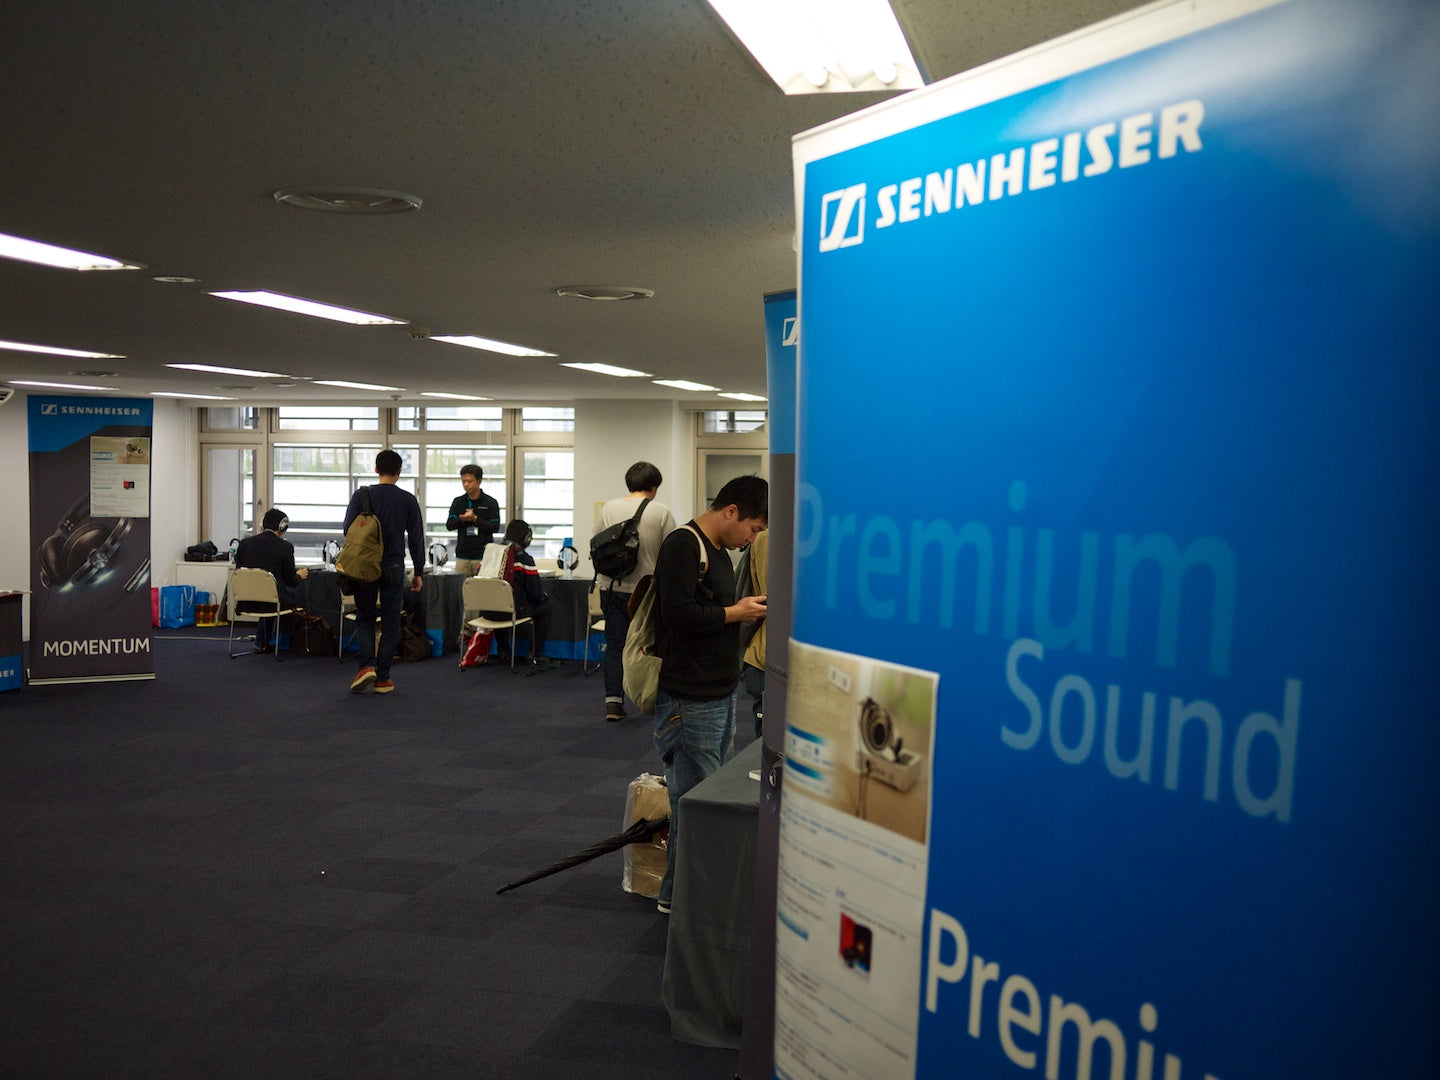 Sennheiser Display Room